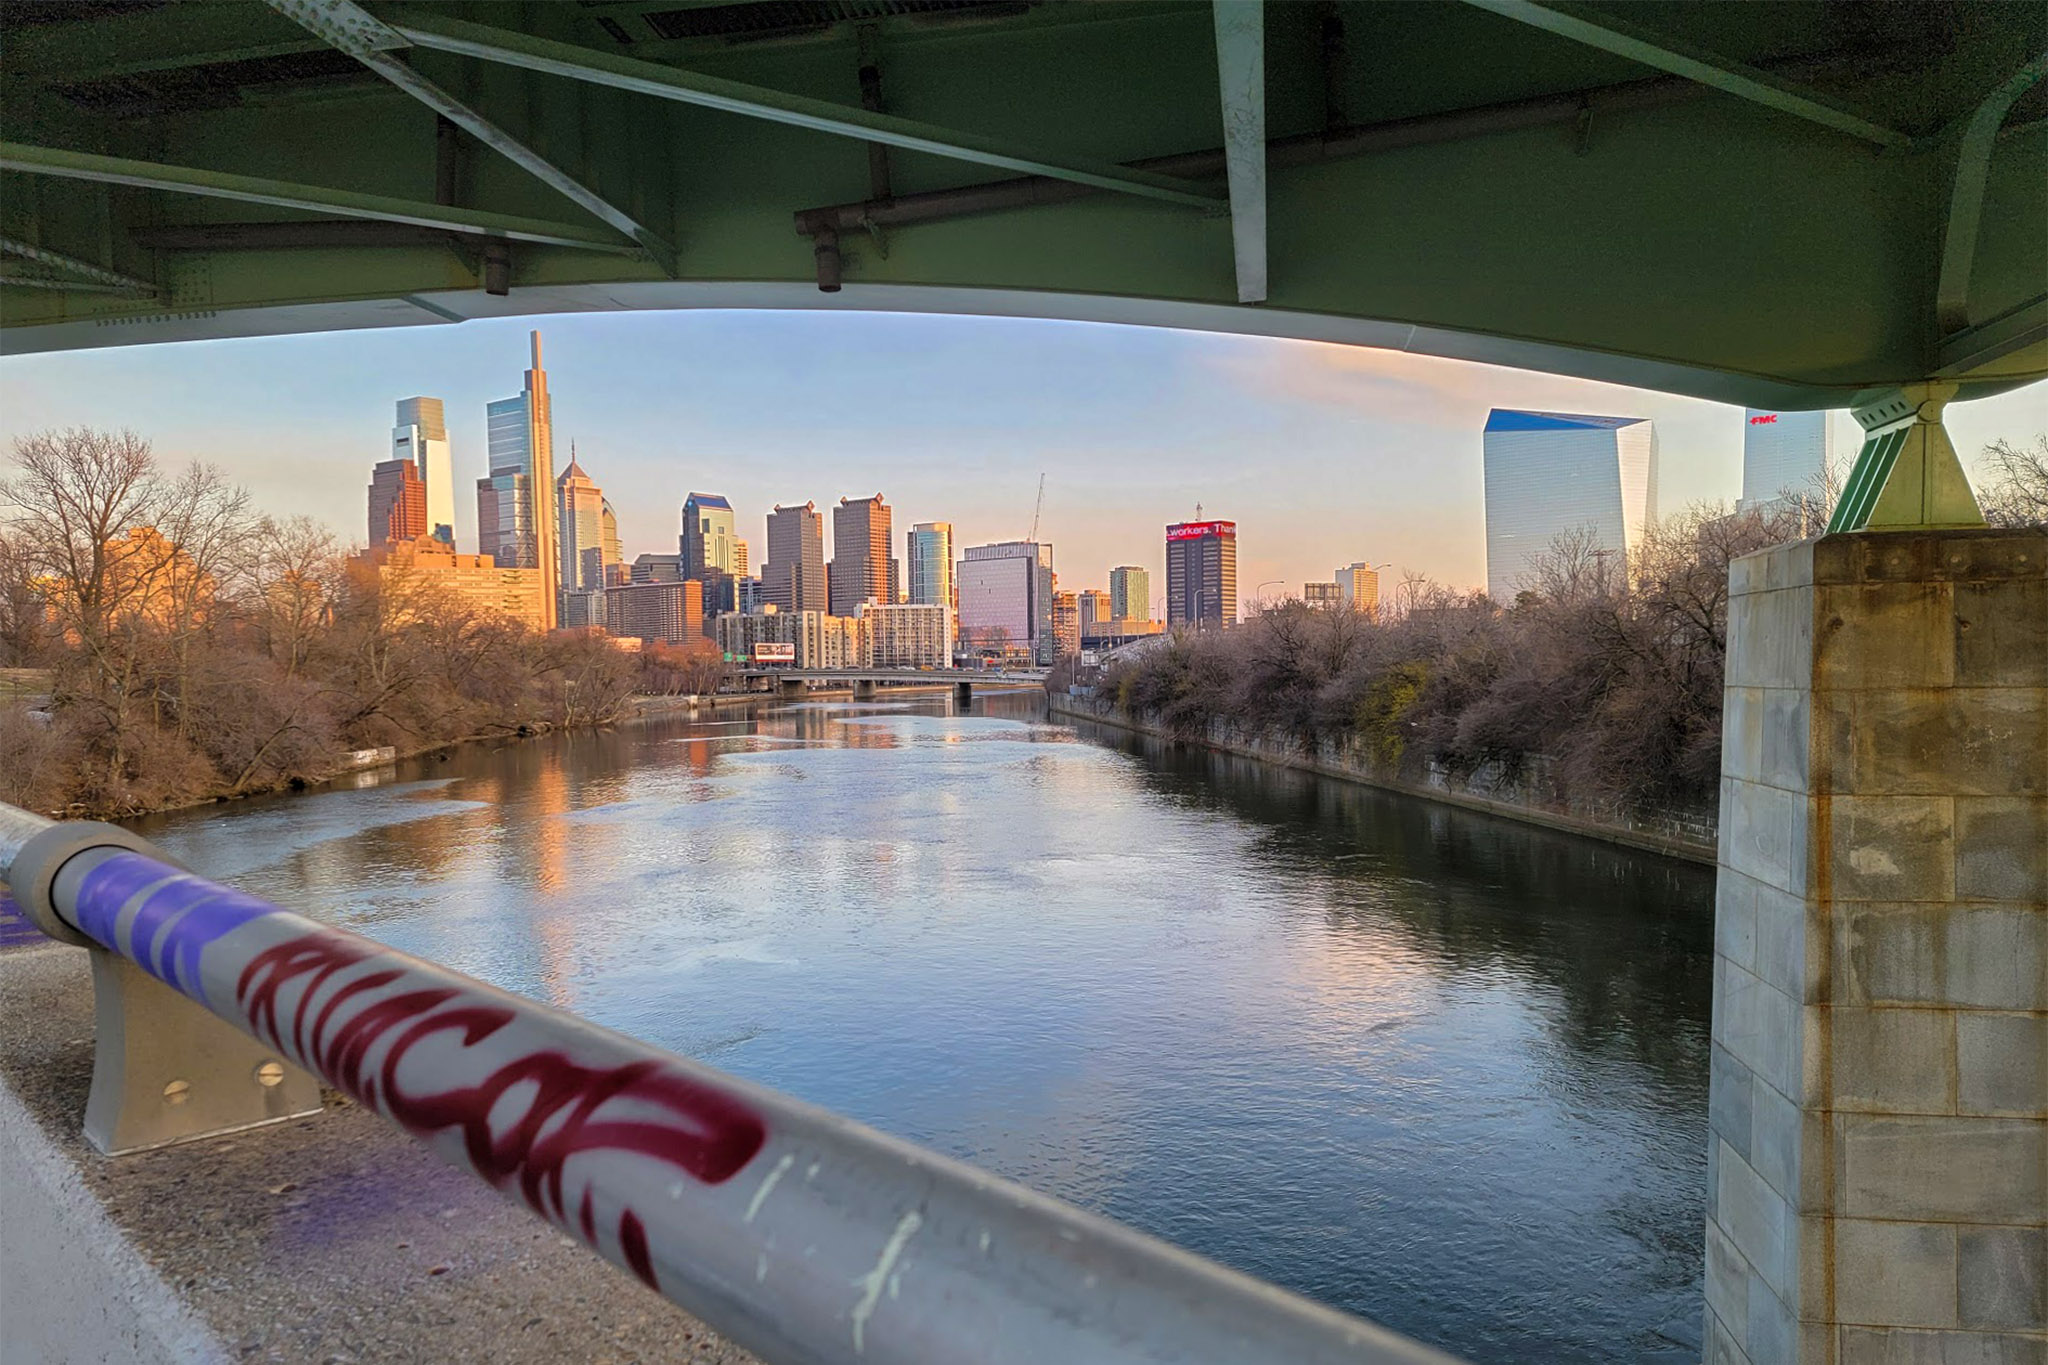 The Philly skyline as seen from a bridge